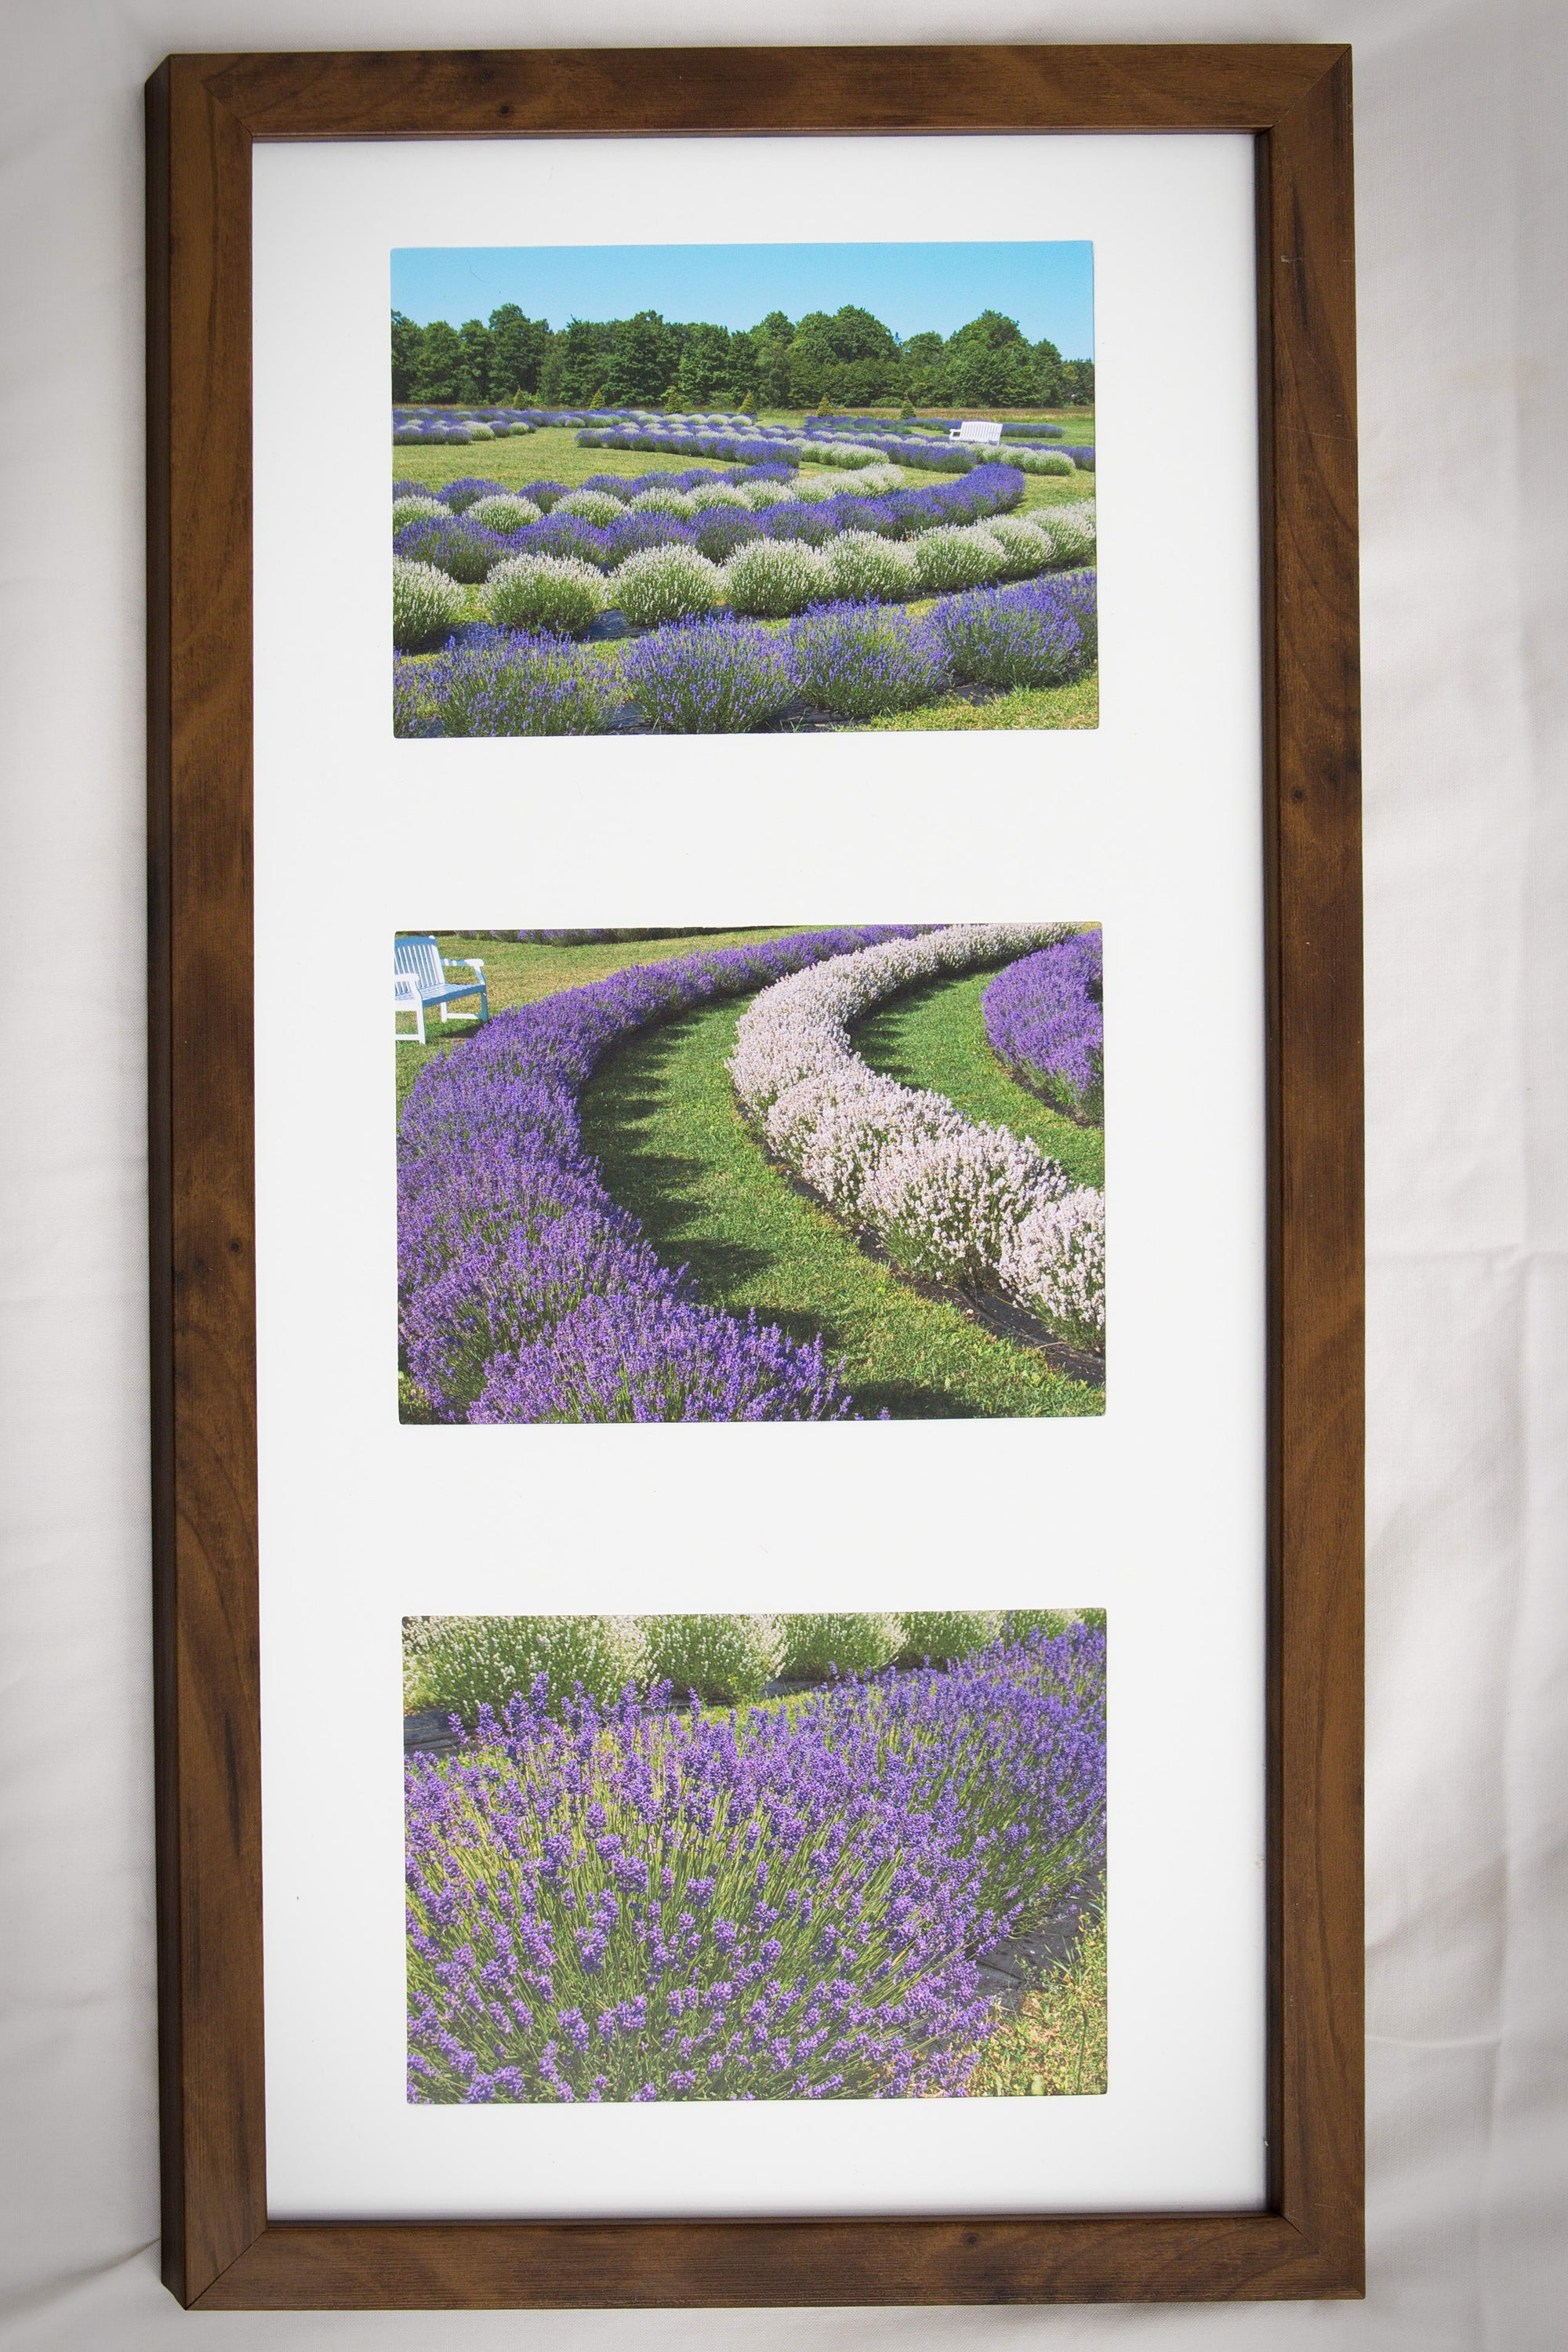 Fragrant Isle Framed Photo Triptych (IS)